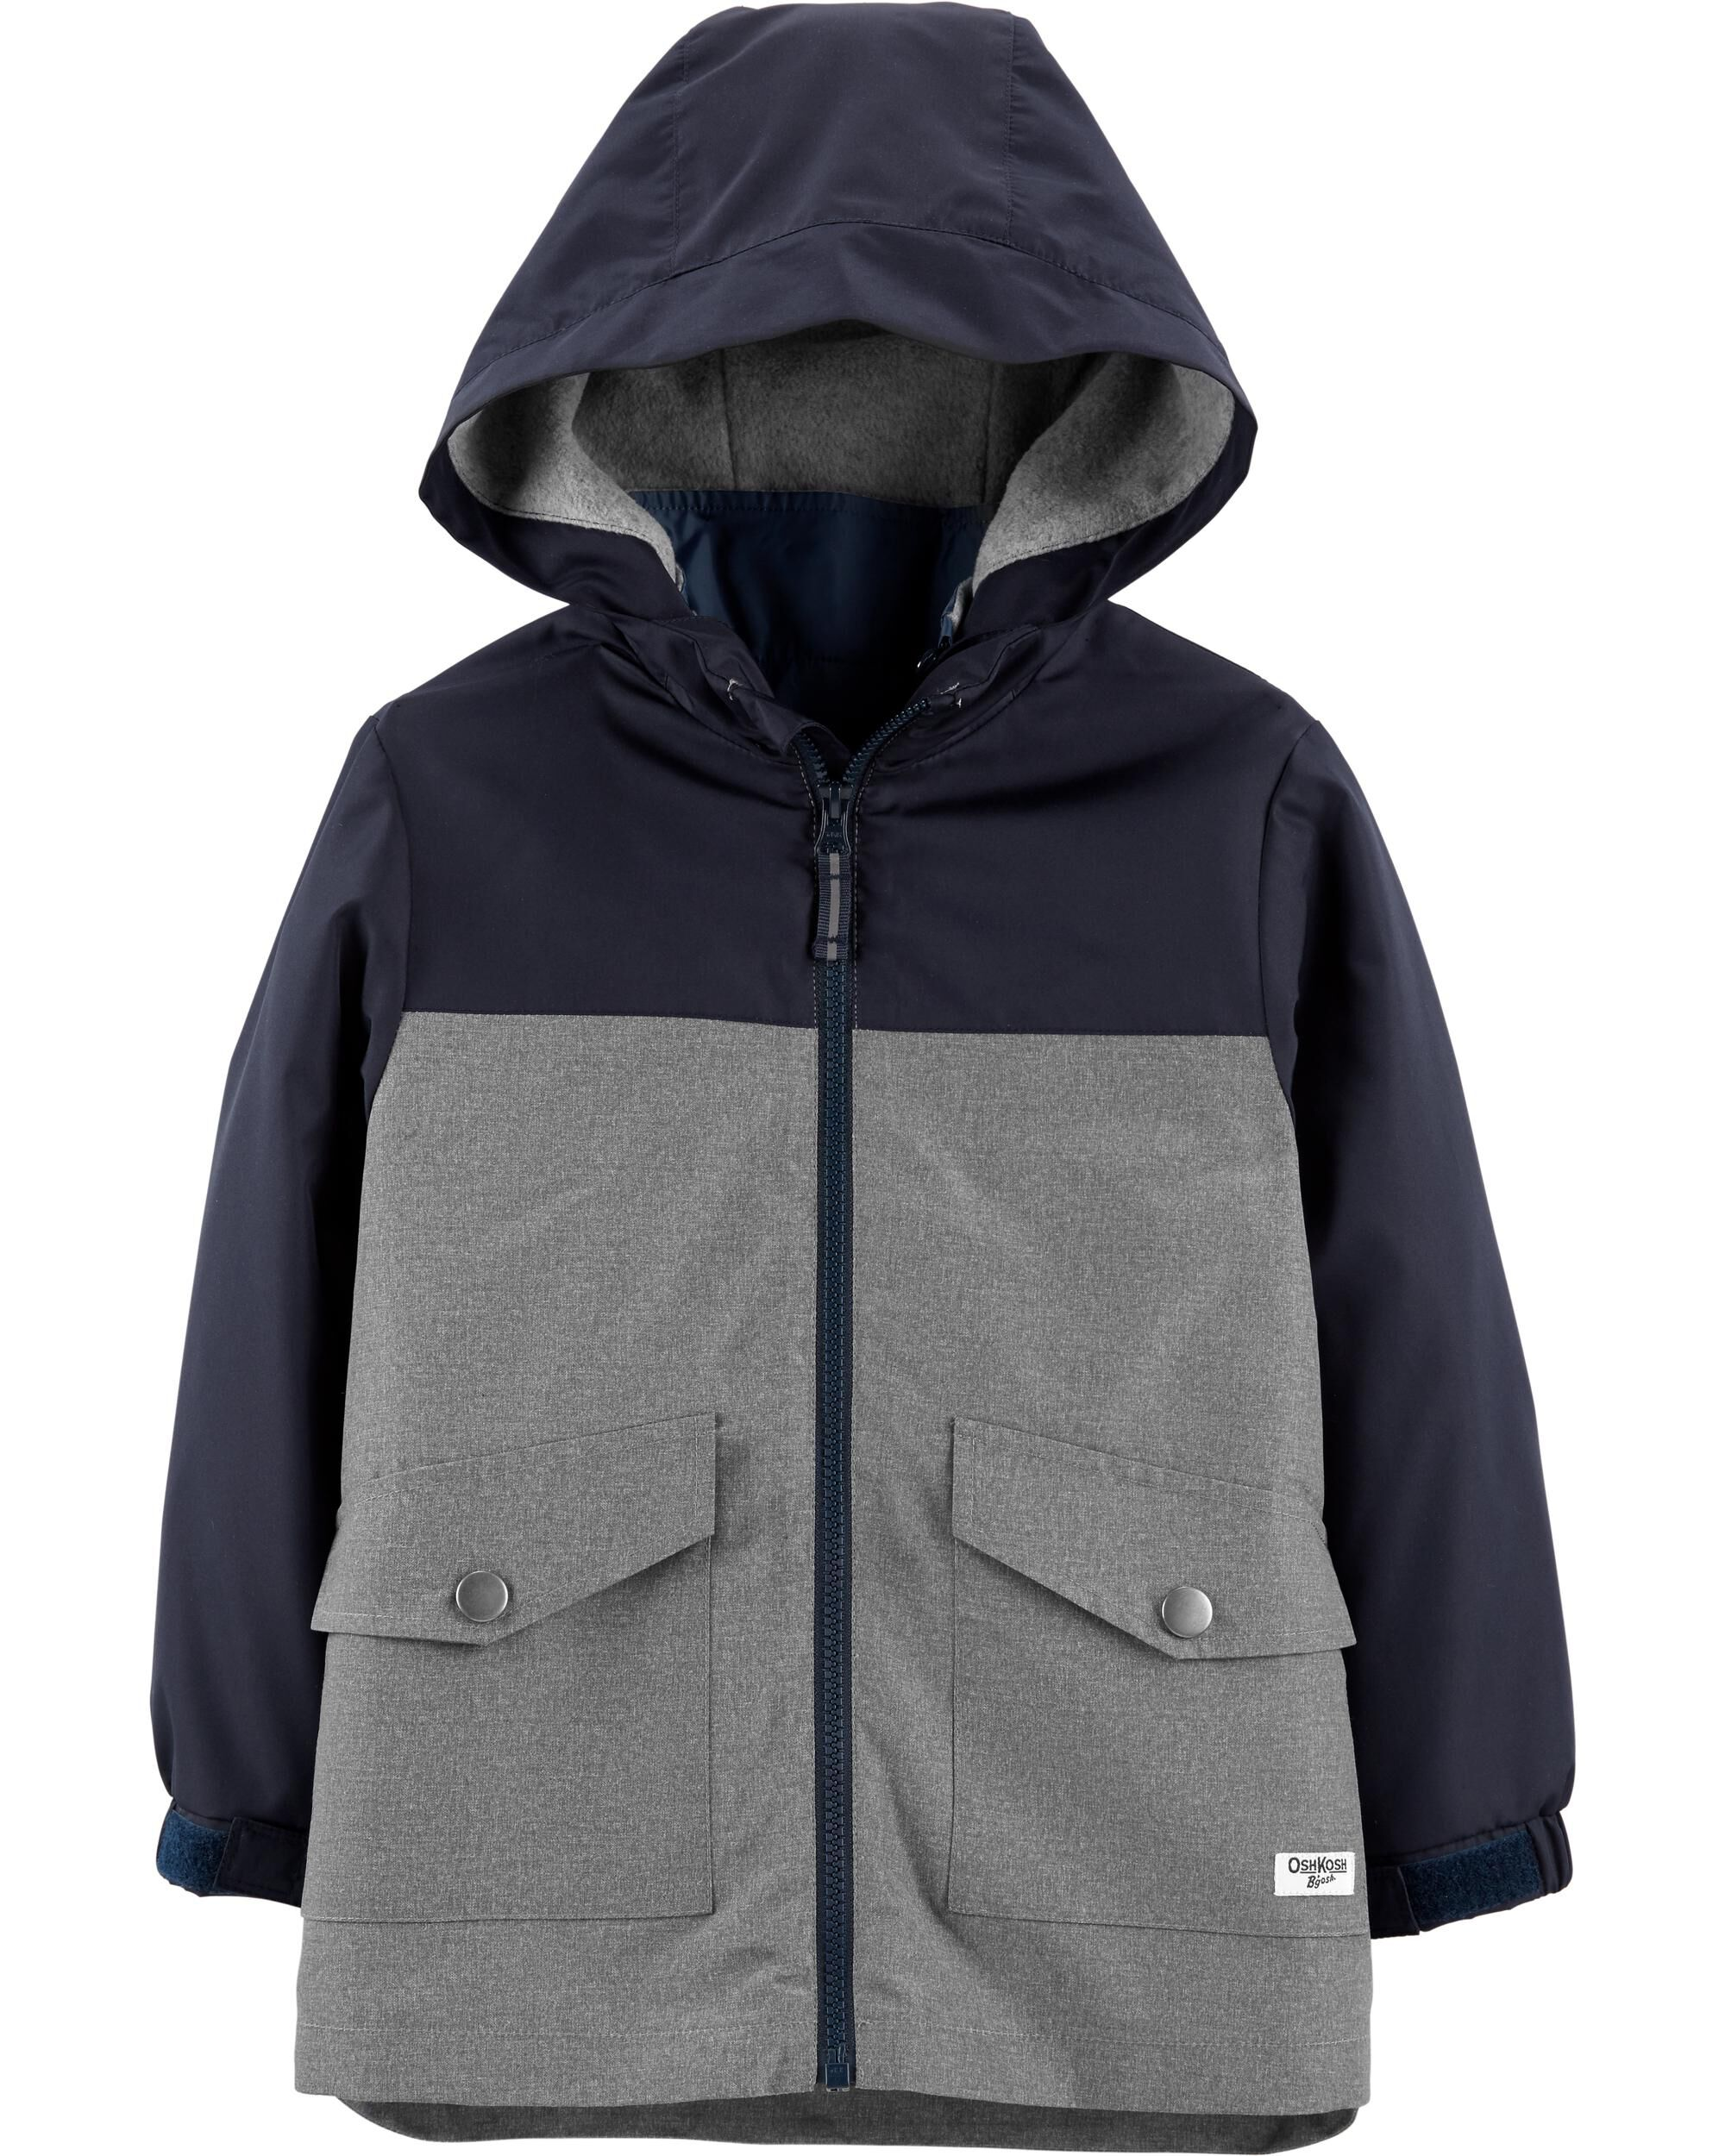 Osh Kosh Little Boys 4-in-1 Heavyweight Systems Jacket Coat Grey 4